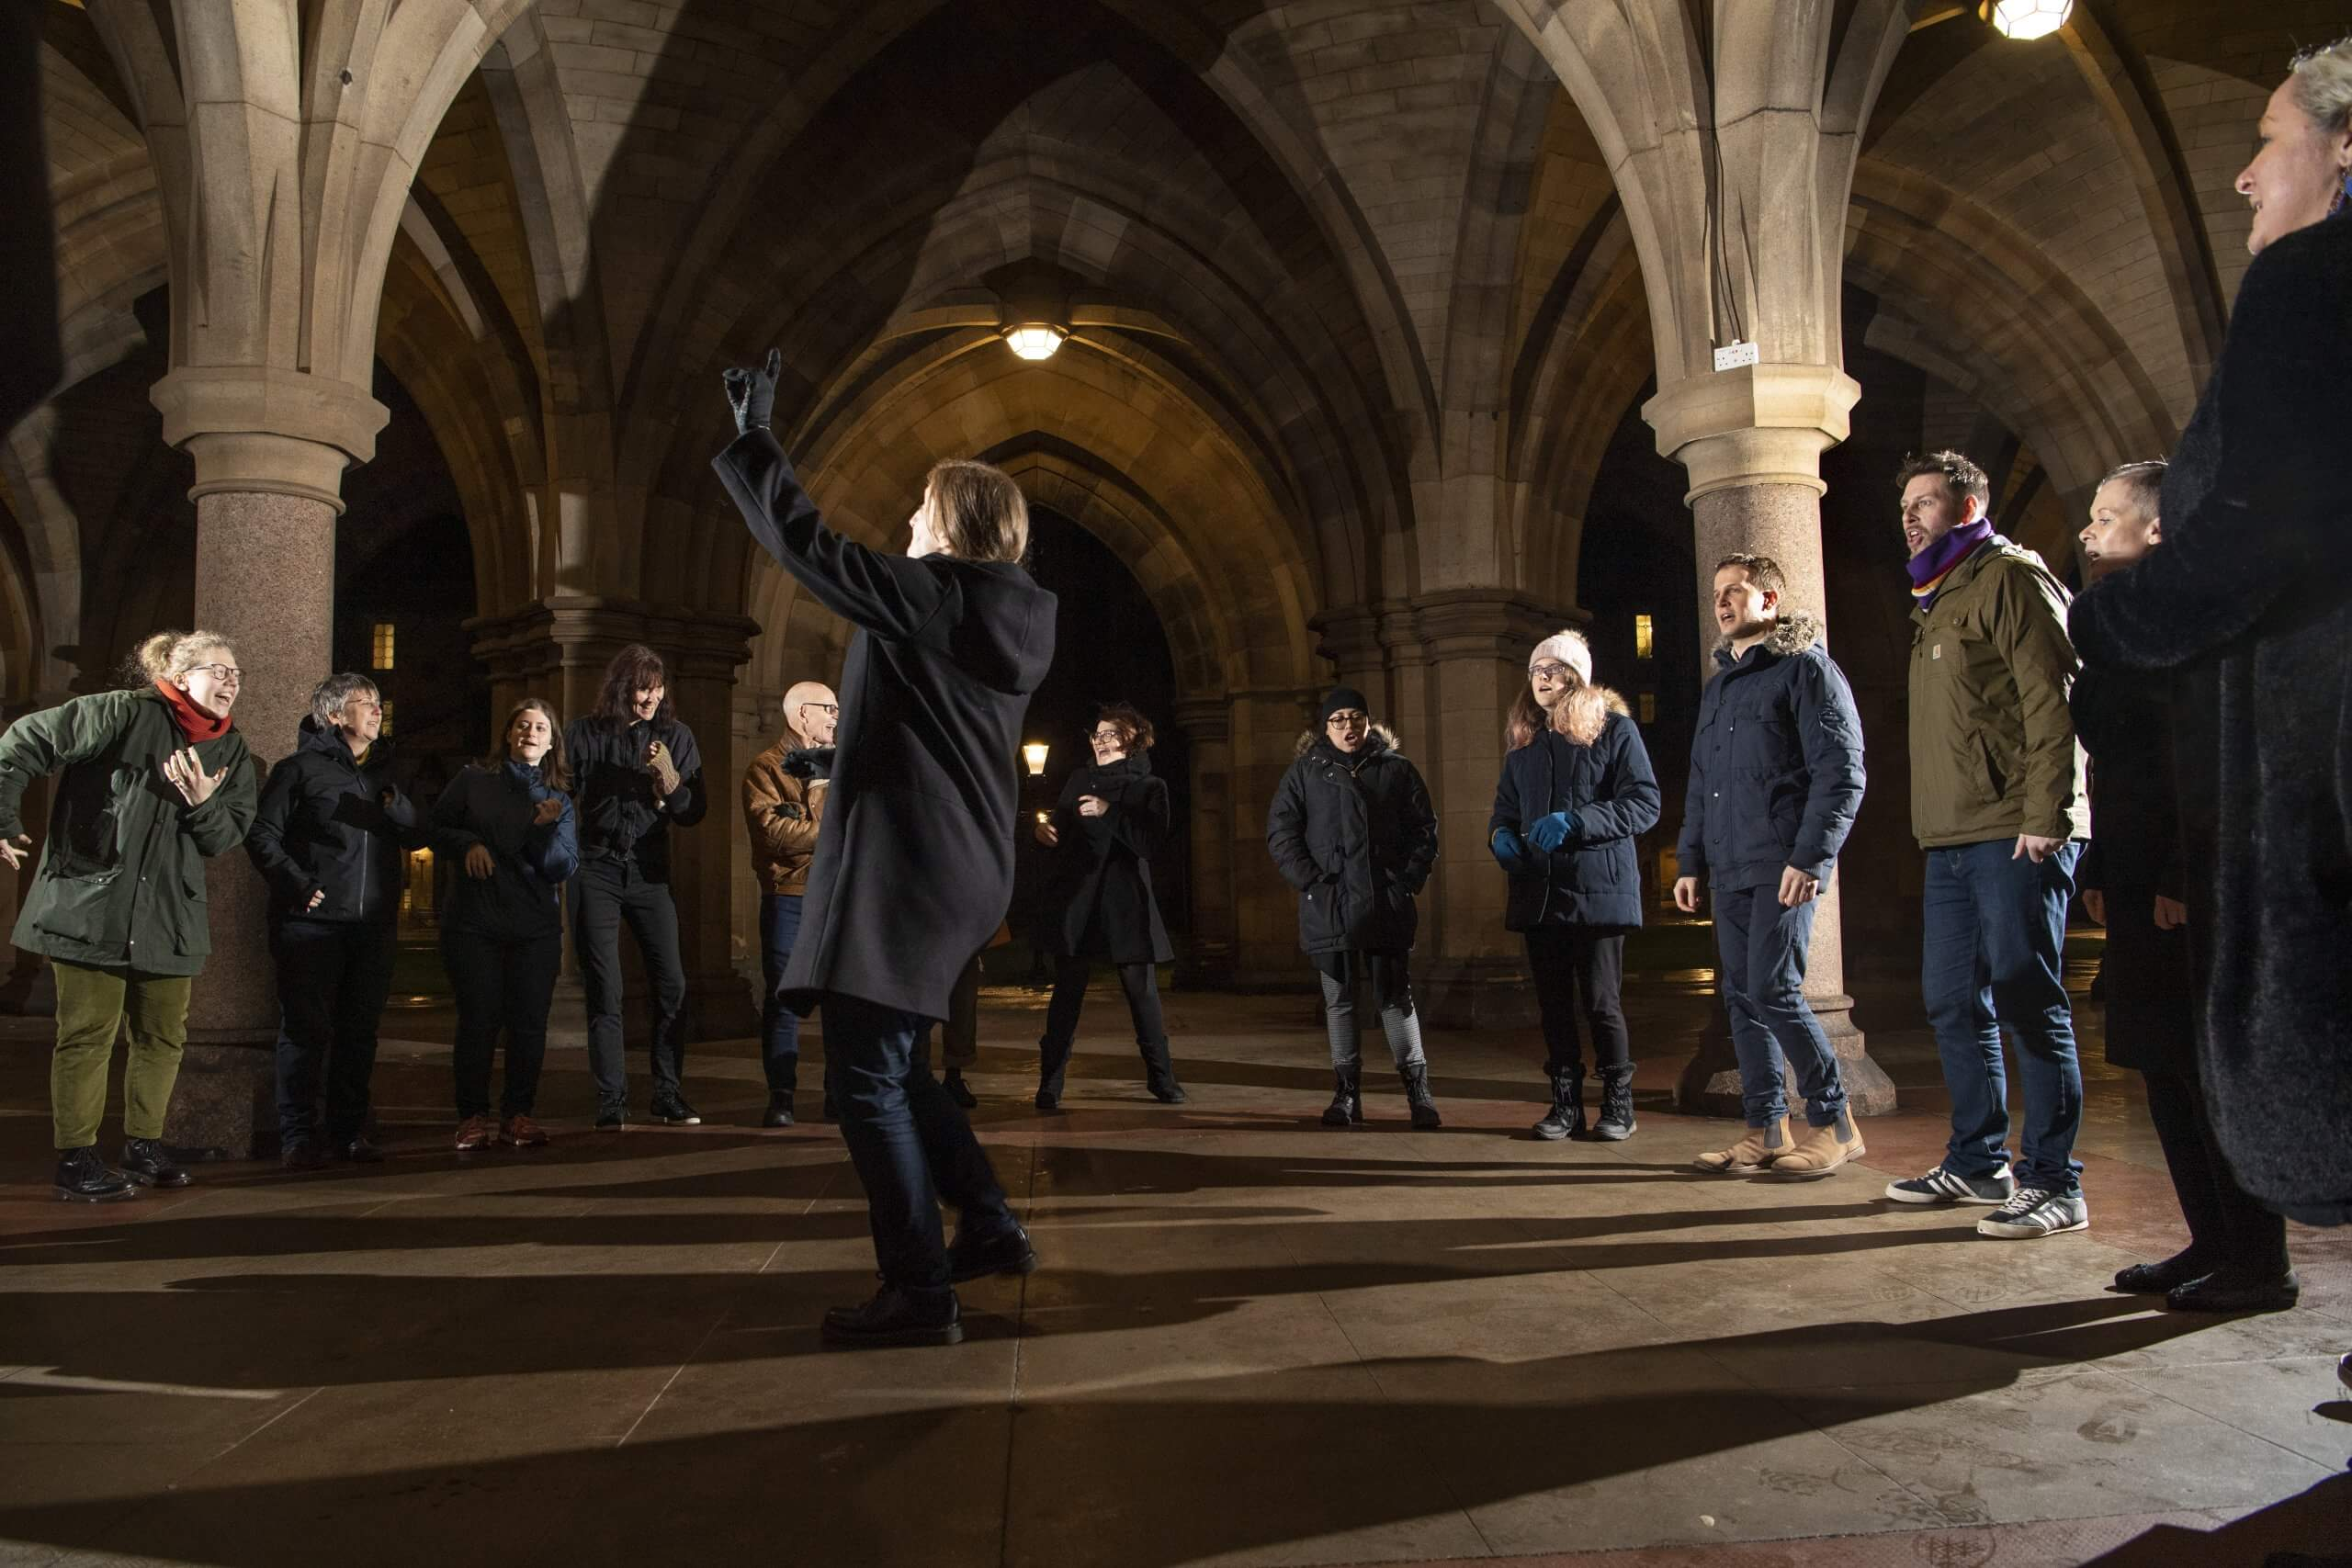 Choir singing at the University of Glasgow Cloisters